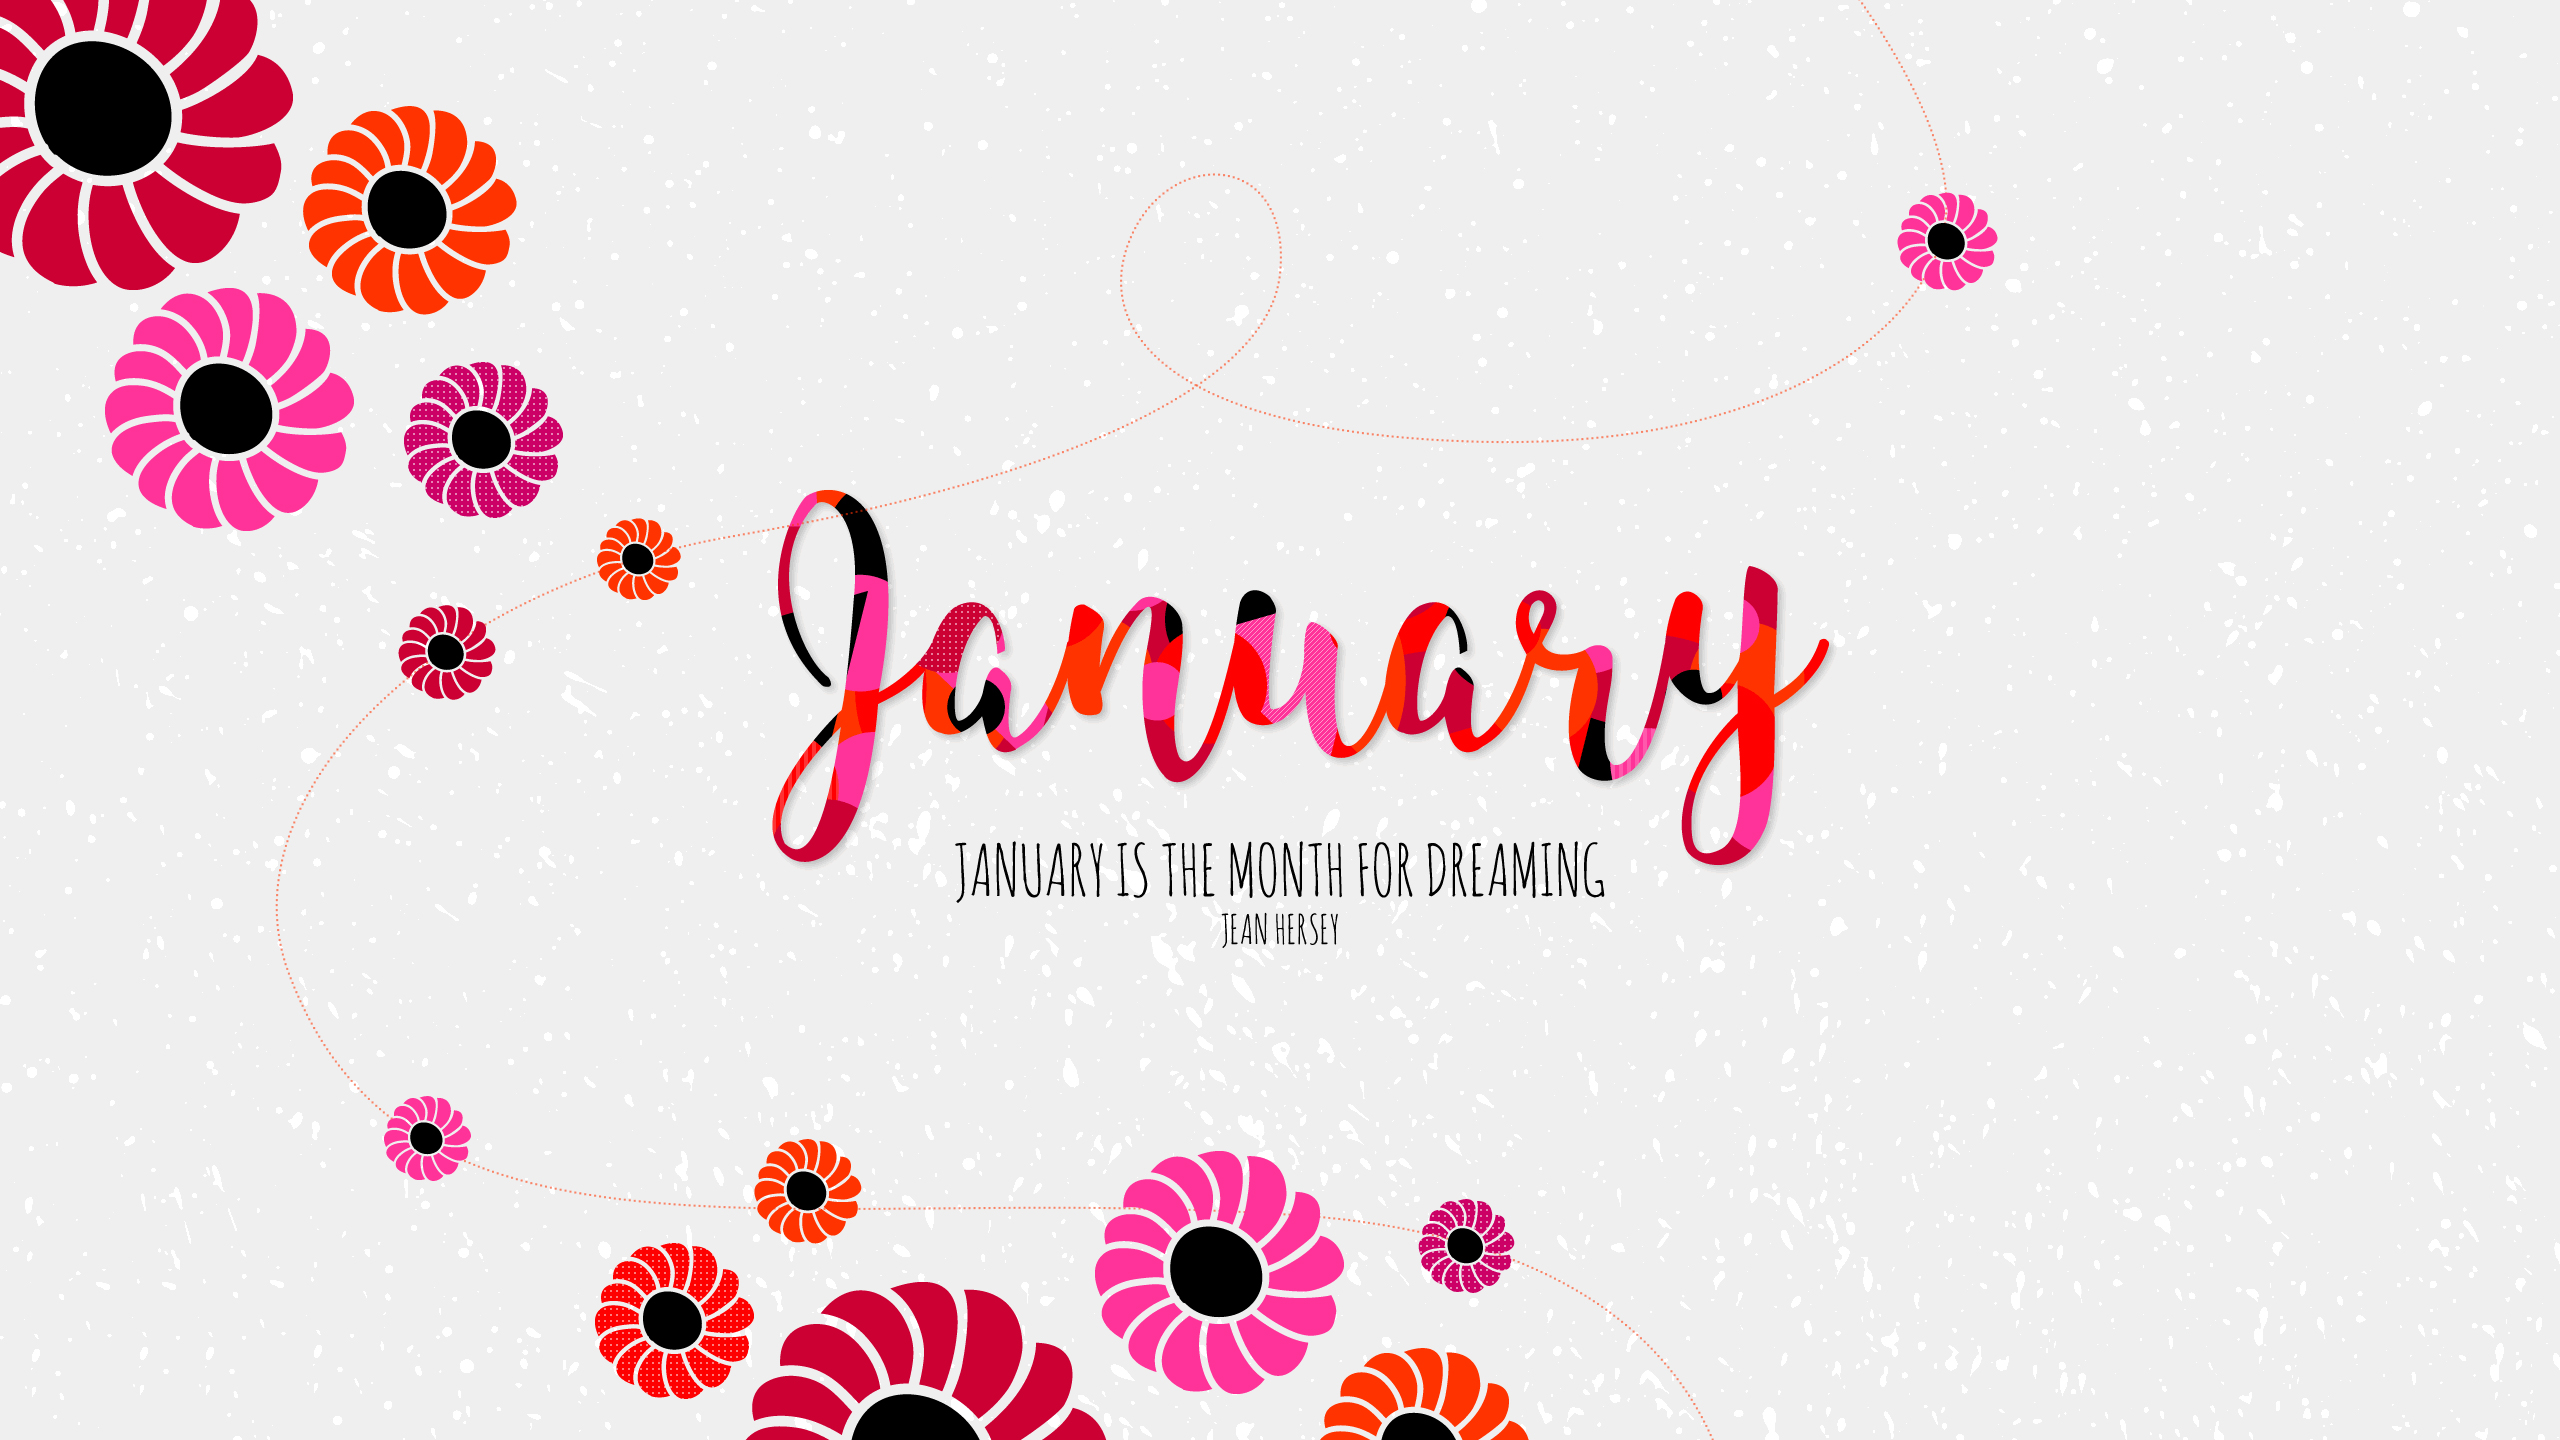 January Month for Dreaming679193000 - January Month for Dreaming - Month, January, For, Dreaming, Catamancer